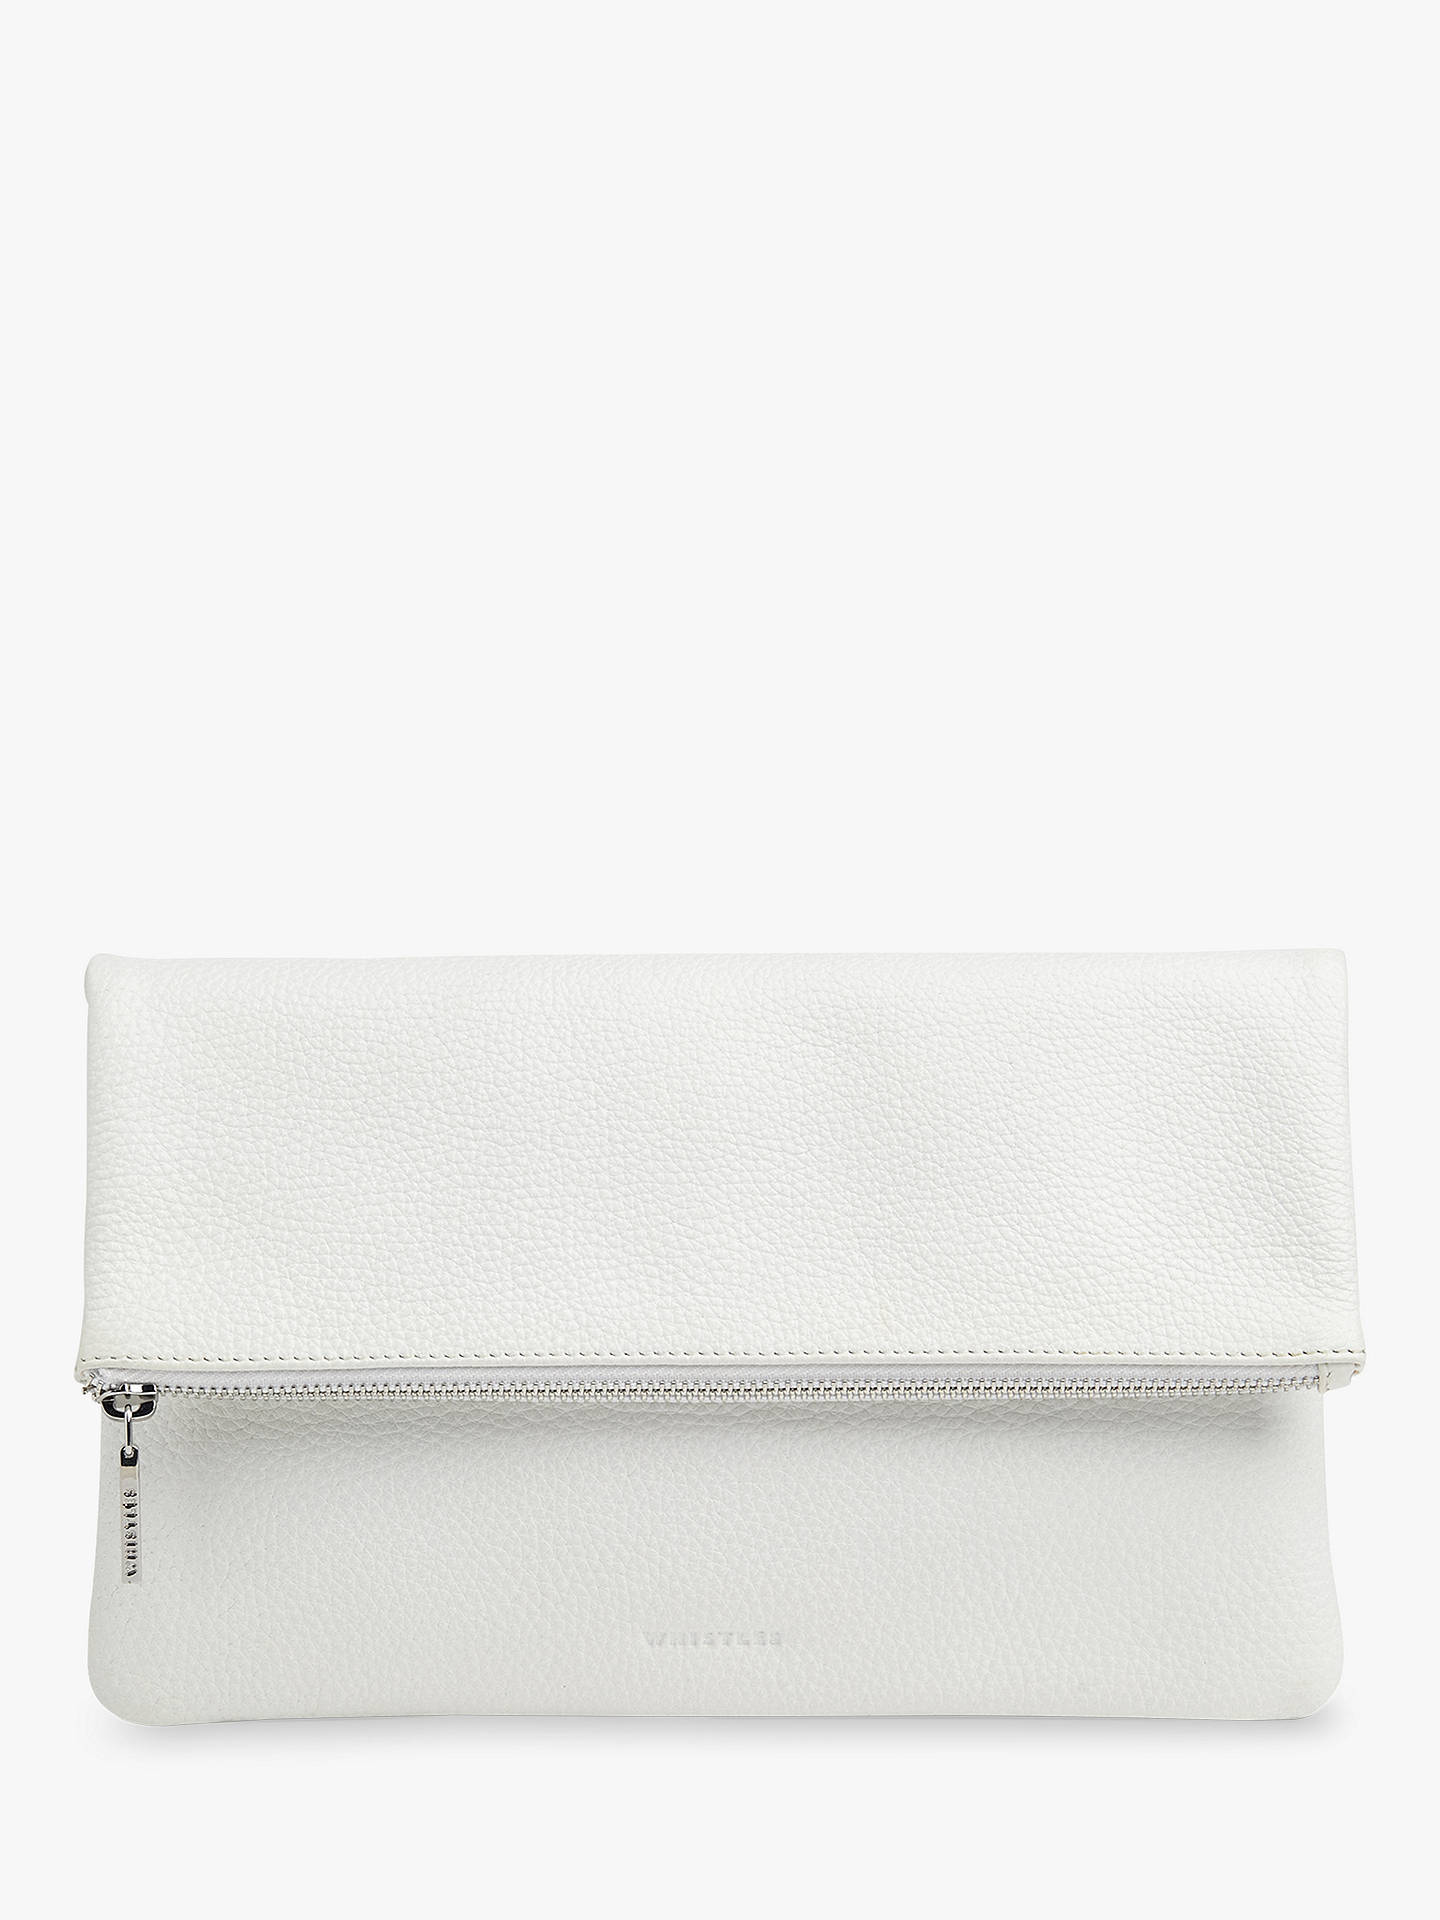 99dda97f7 Buy Whistles Chapel Leather Foldover Clutch Bag, White Online at  johnlewis.com ...